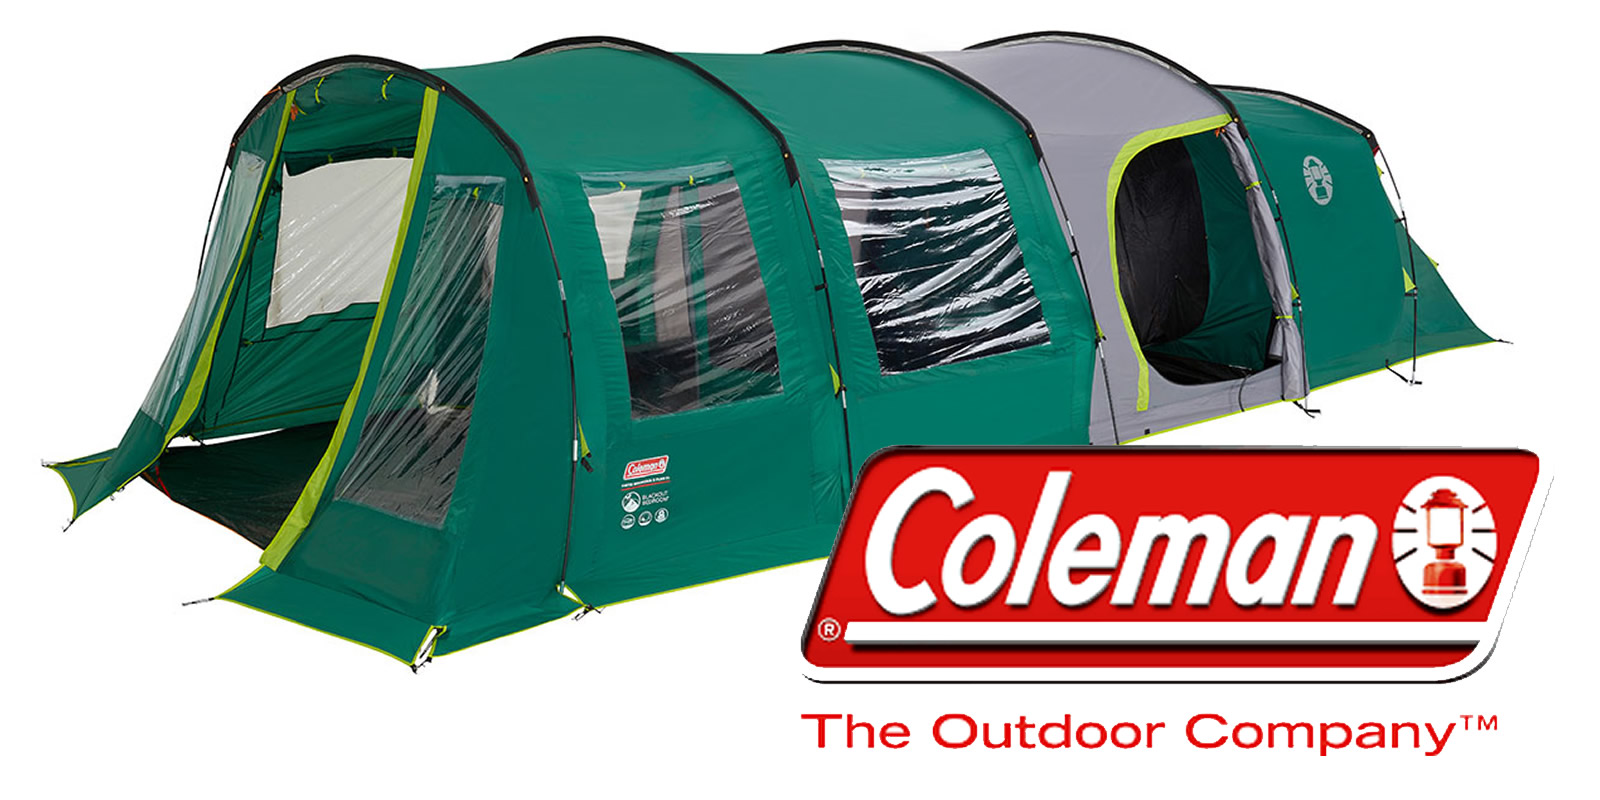 new 2019 coleman tents  sc 1 st  BCH C&ing & Coleman Tents | Tent Suppliers UK | BCH Camping